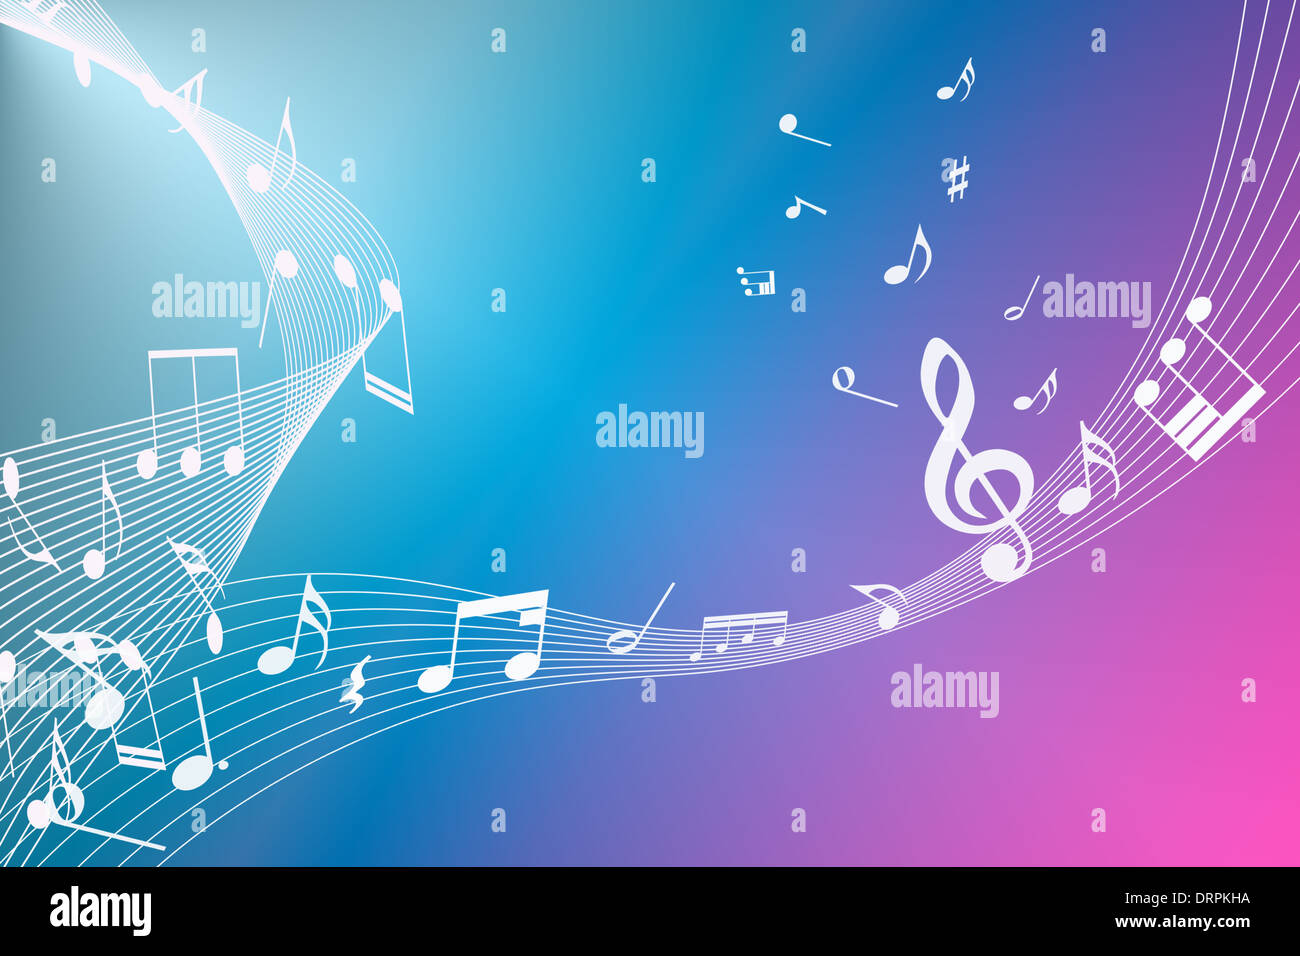 Music notes background stock photos music notes background stock abstract background of music notes stock image voltagebd Image collections